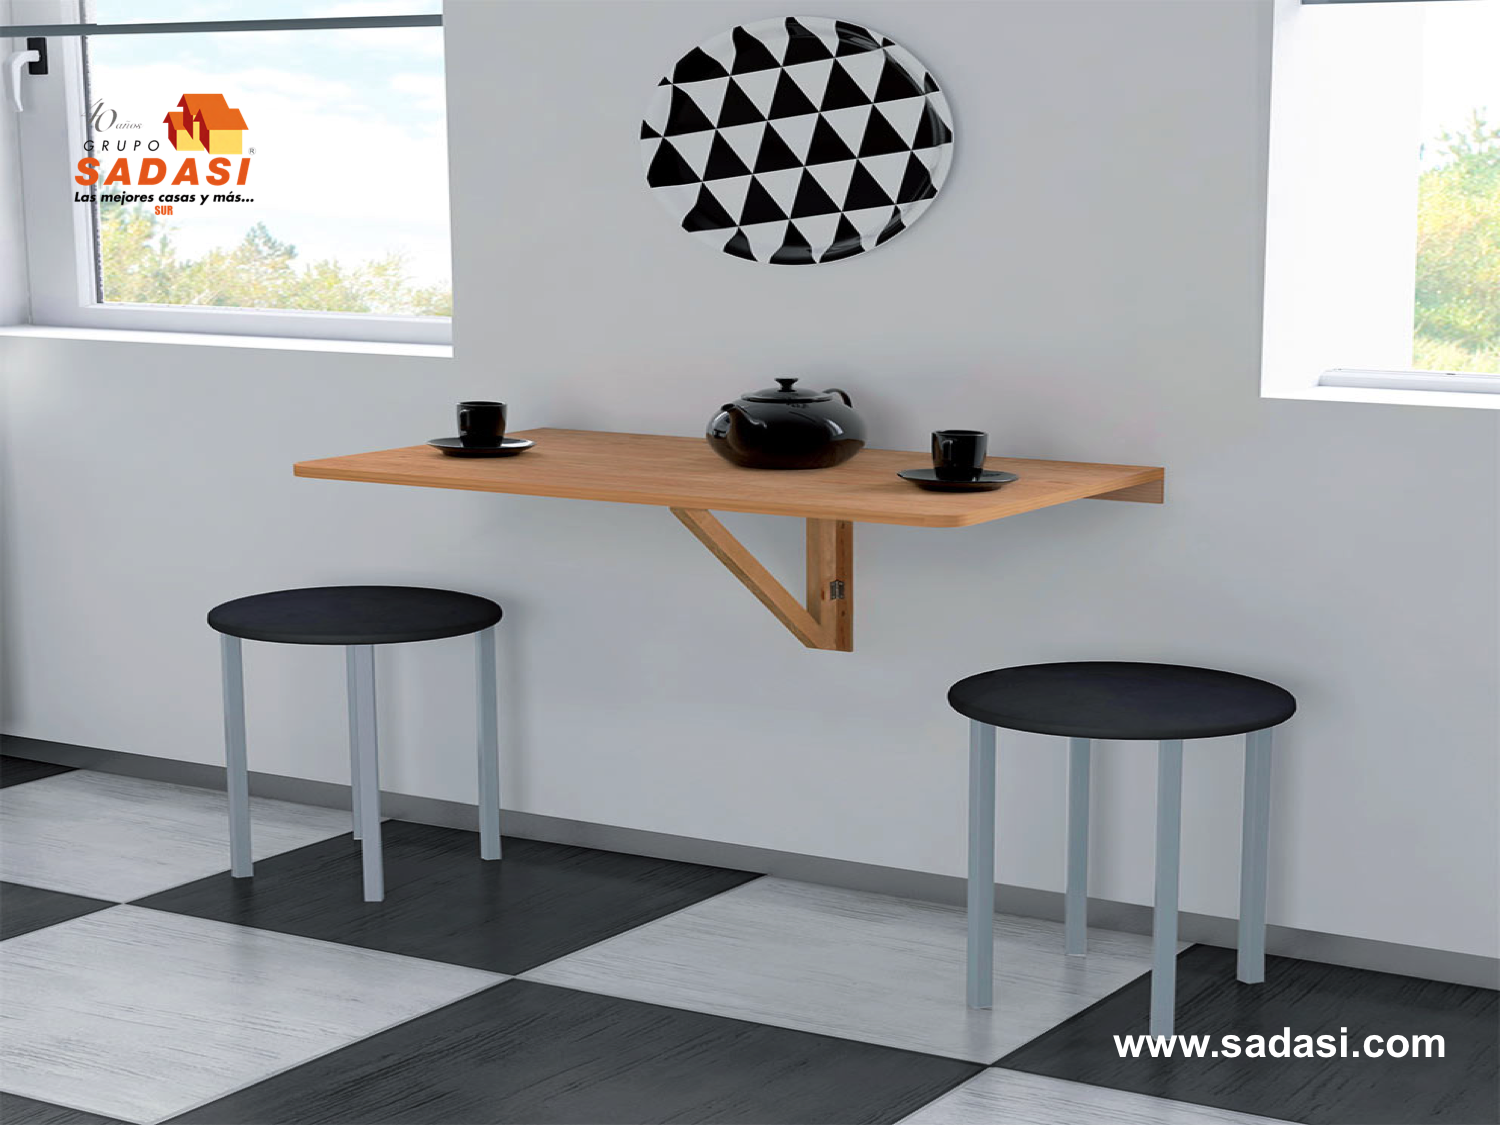 M s de 25 ideas incre bles sobre mesa abatible pared en - Mesas plegables a la pared ...